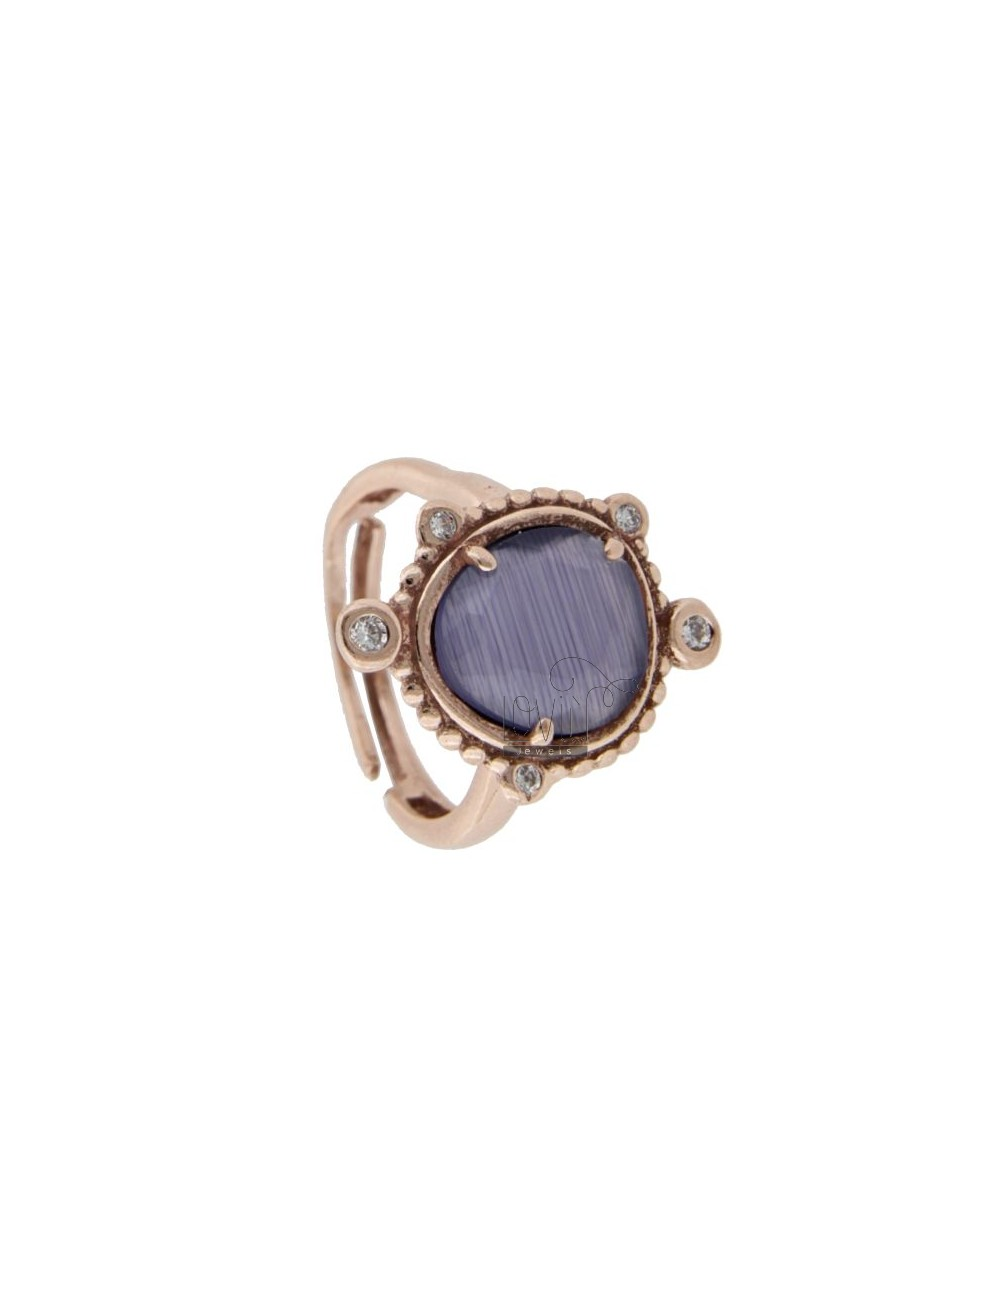 RING WITH HYDROTHERMAL STONE SASSO SMALL PURPLE COLOR 13 AND ZIRCONIA IN AG ROSATO TIT 925 ‰ ADJUSTABLE SIZE